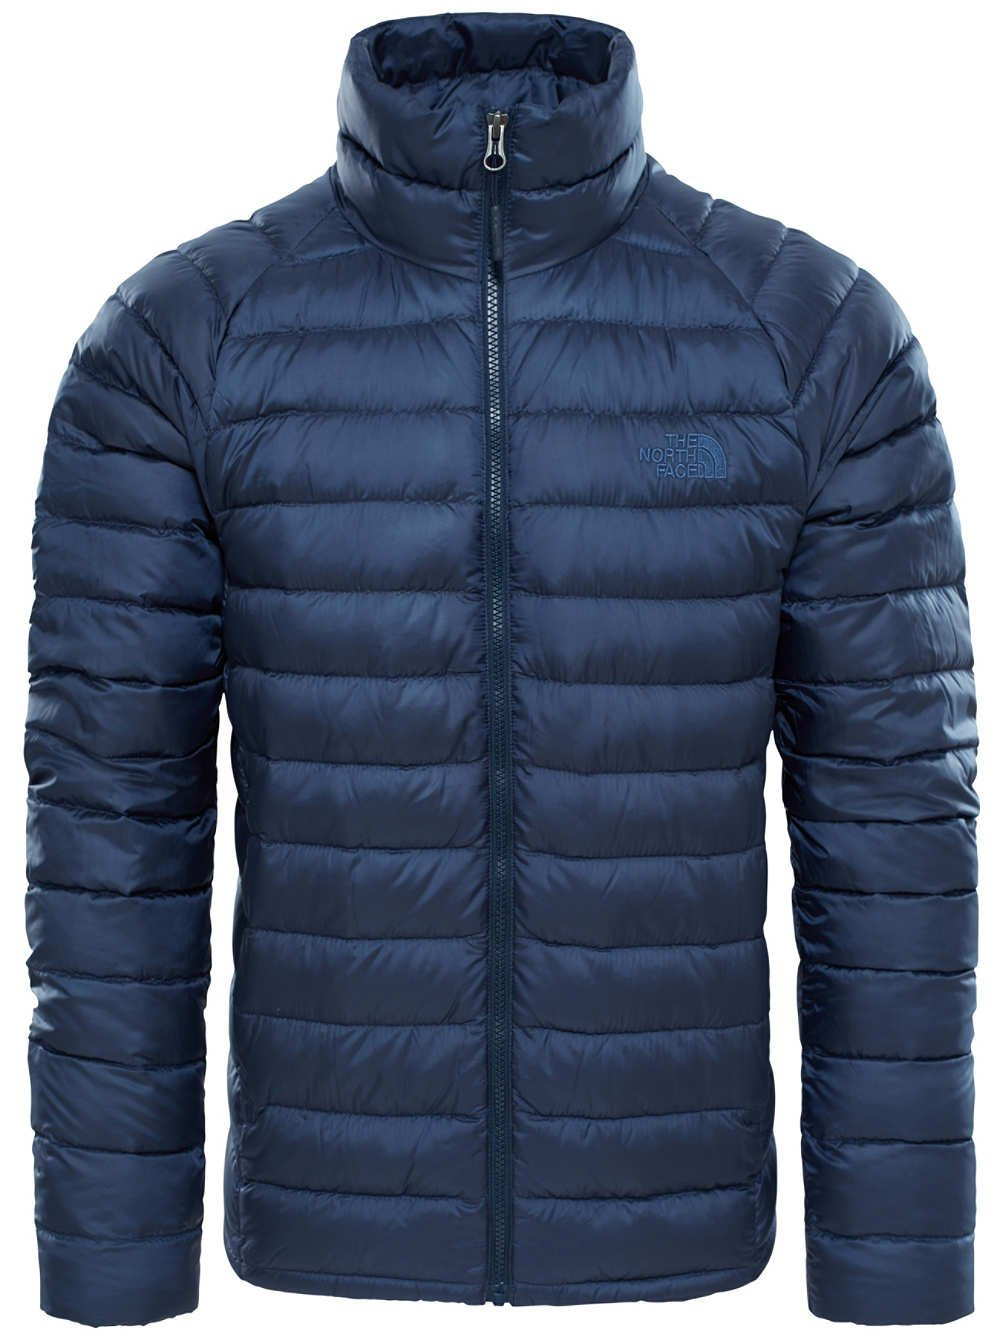 Giacca Uomo The North Face M Trevail Jacket